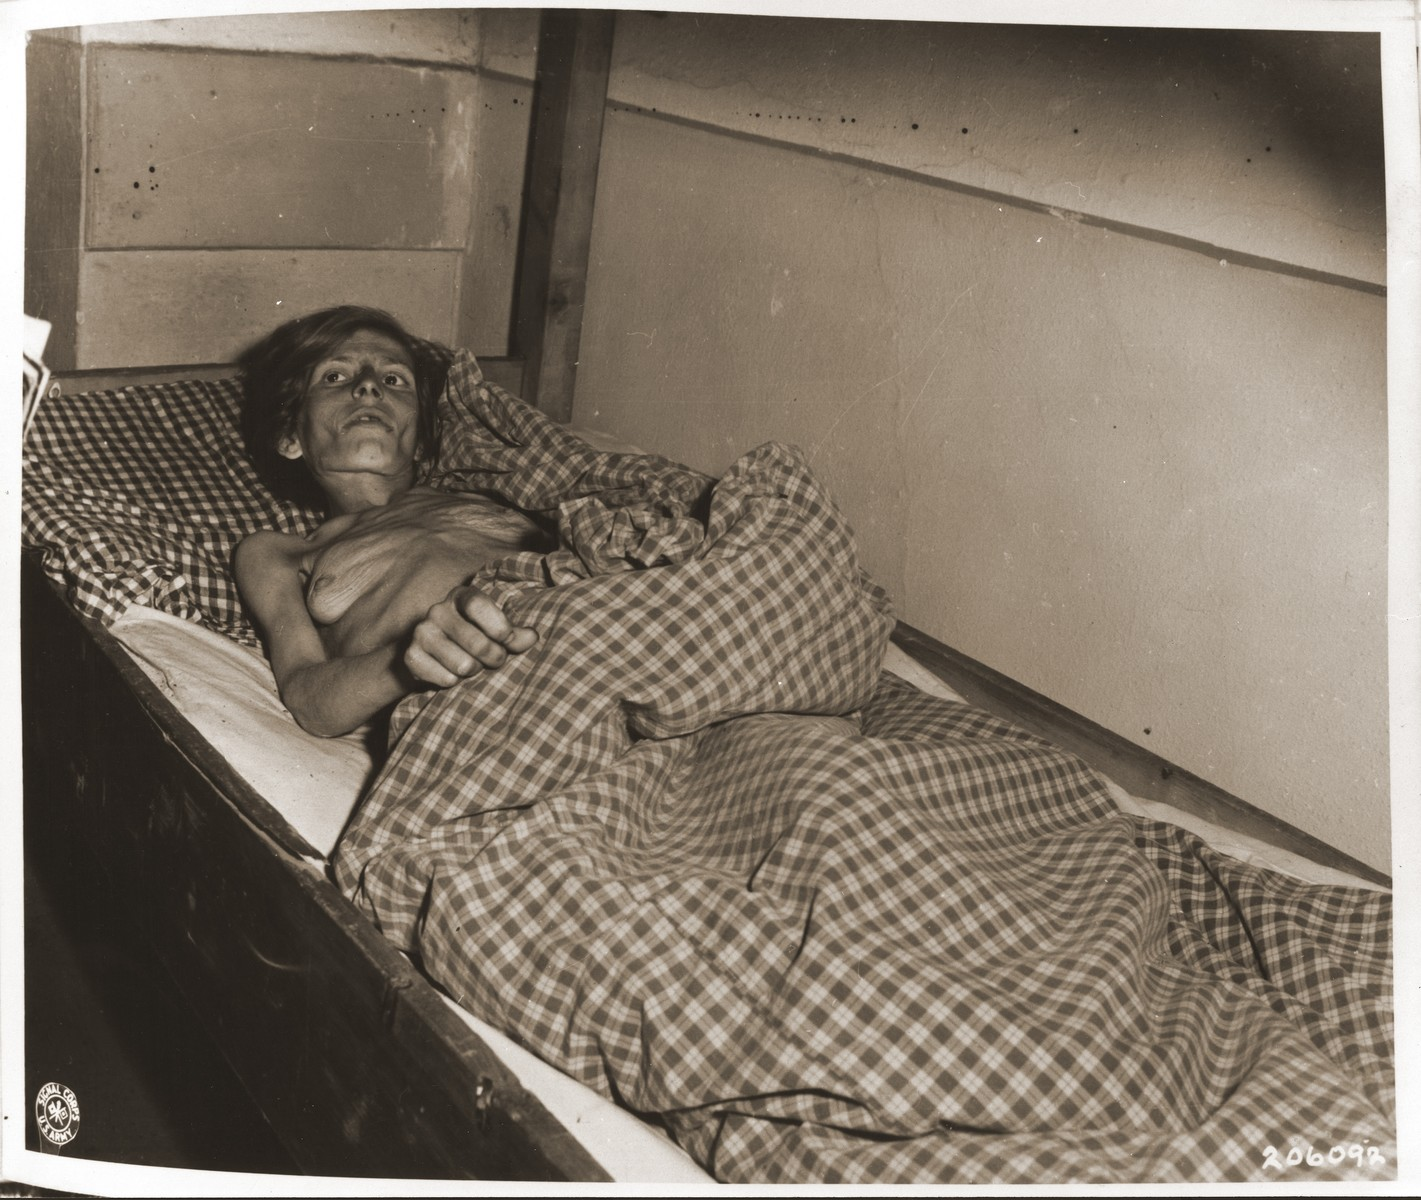 An emaciated female Jewish survivor of a death march from the Gruenberg labor camp to Volary, lies in an American military field hospital in Volary, Czechoslovakia.